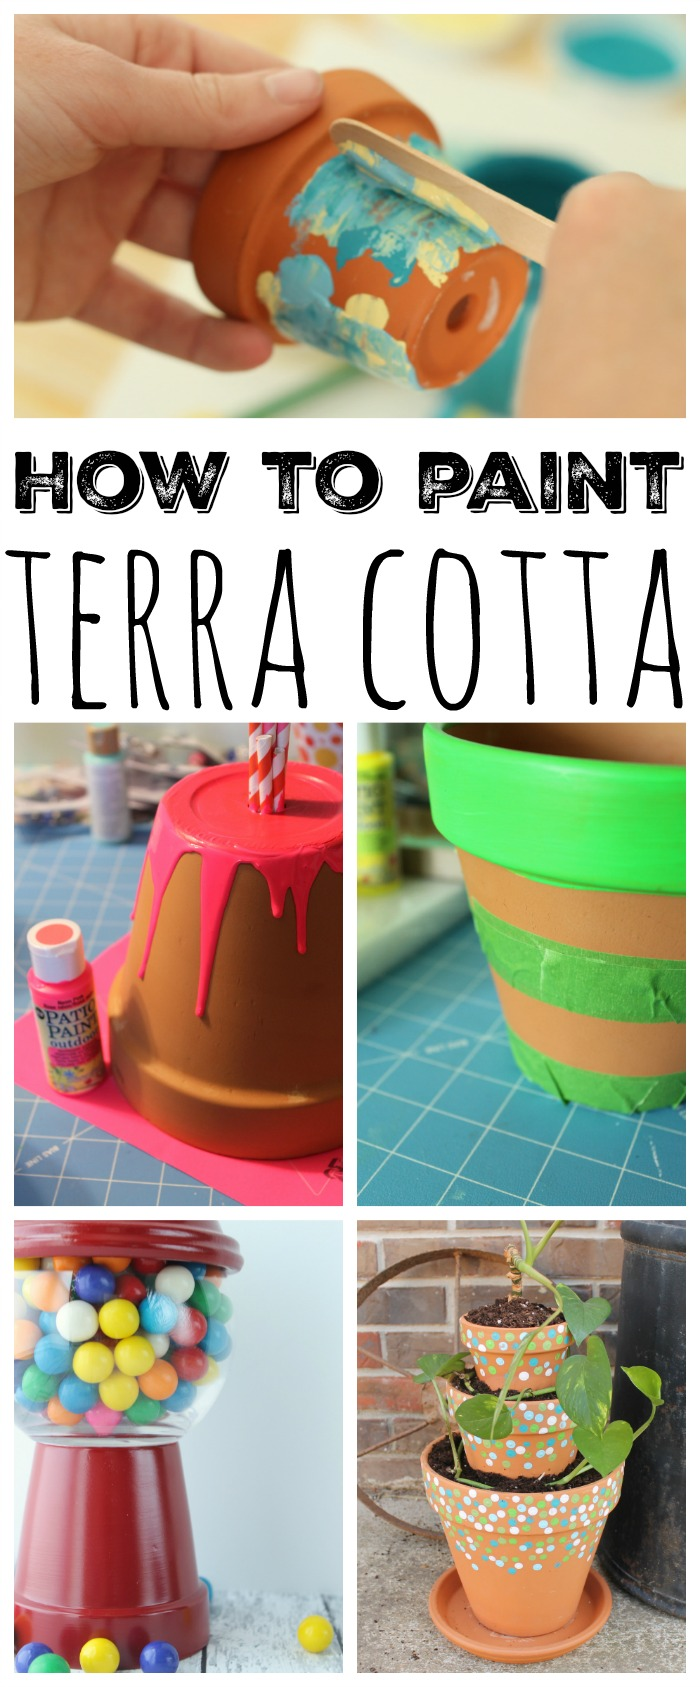 Learn how to paint terra cotta for the best results!